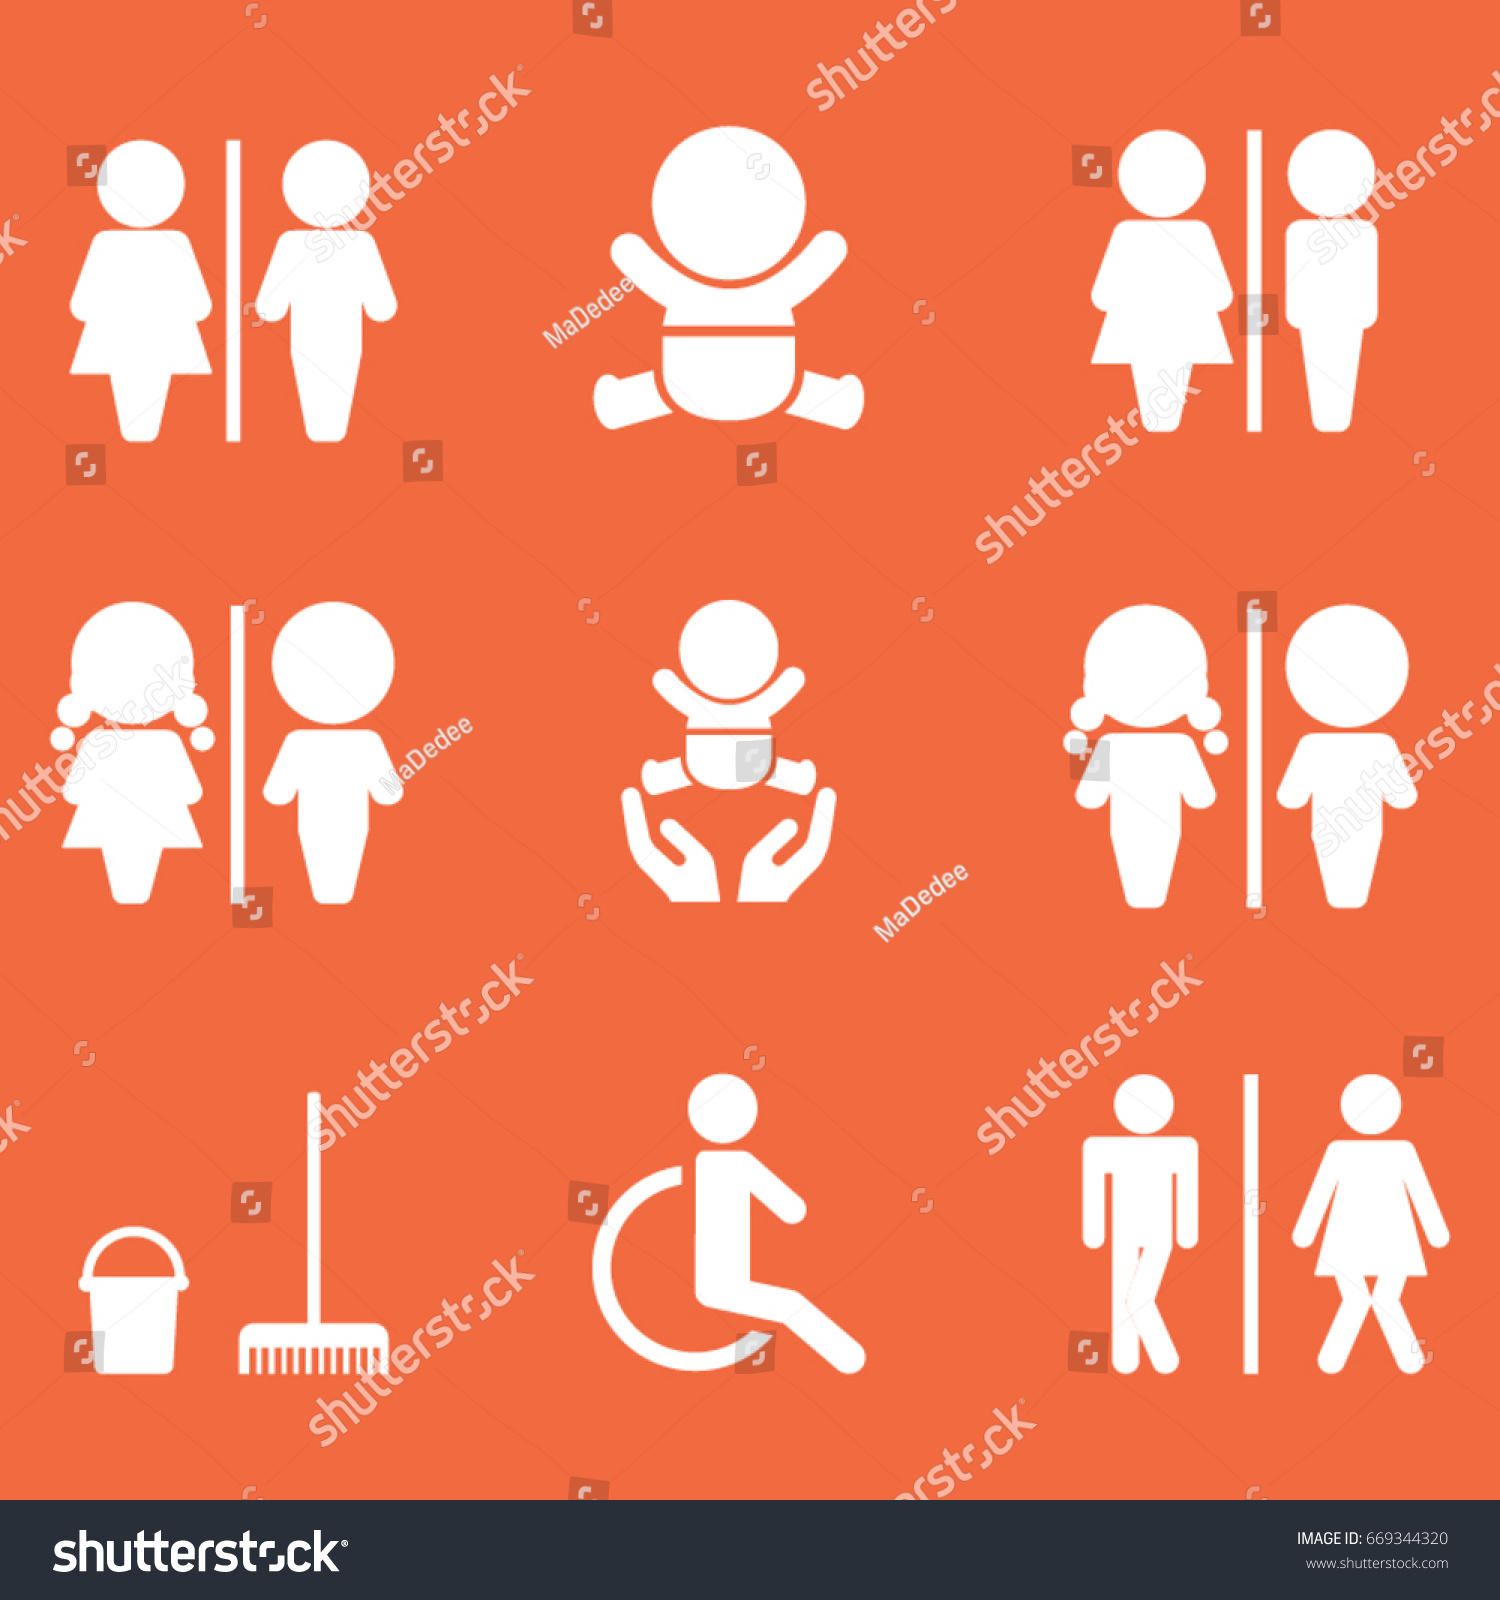 Toilet signs vector set stock images image 36323784 - Wc Icon Set Toilet Sign Stock Vector 669344320 Shutterstock Stock Vector Wc Icon Set Toilet Sign